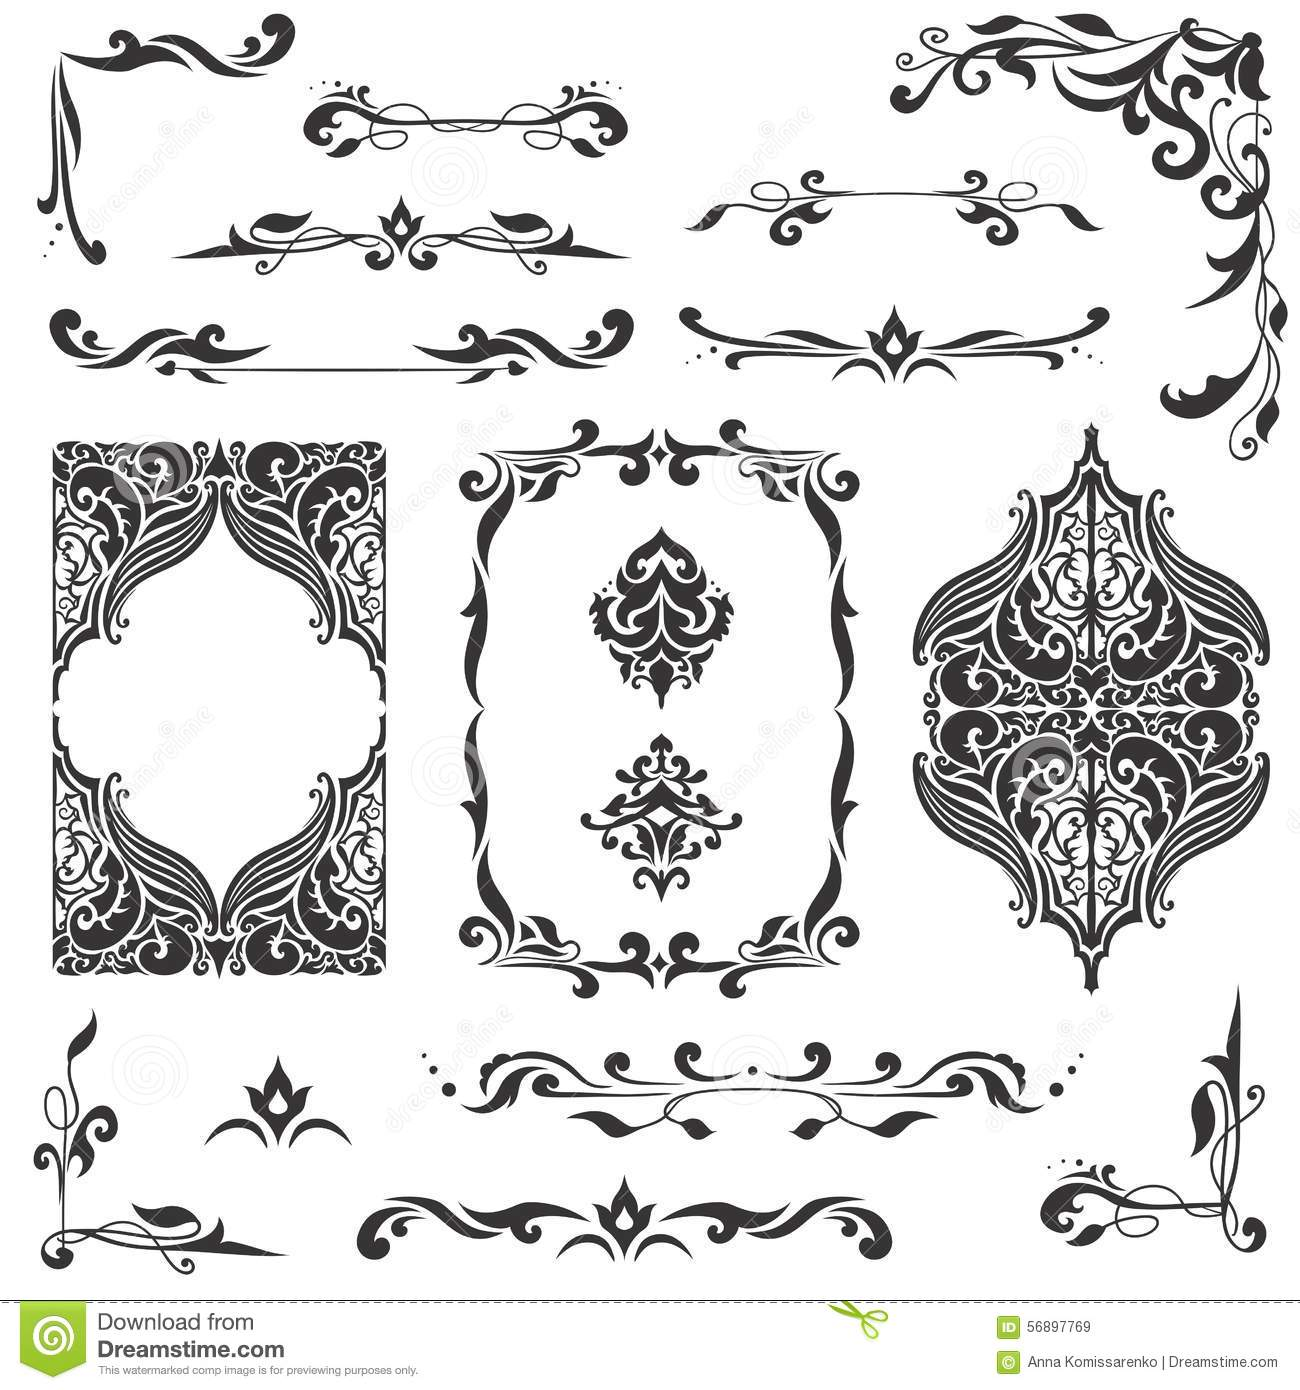 Stock Illustration Vintage Header Card Floral Image54639950 likewise Stock Illustration Set Of Wedding Icons Vector as well Royalty Free Stock Photography Rough Watercolor Paper Texture Image15619907 also Stock Illustration Elegant Arabic Vig tes Set Large Bundle Detailed Vector Borders Corners Dividers Islamic Eastern Style Image56897769 also Sparrow Drawing With Scripture Ja  King. on vintage plans